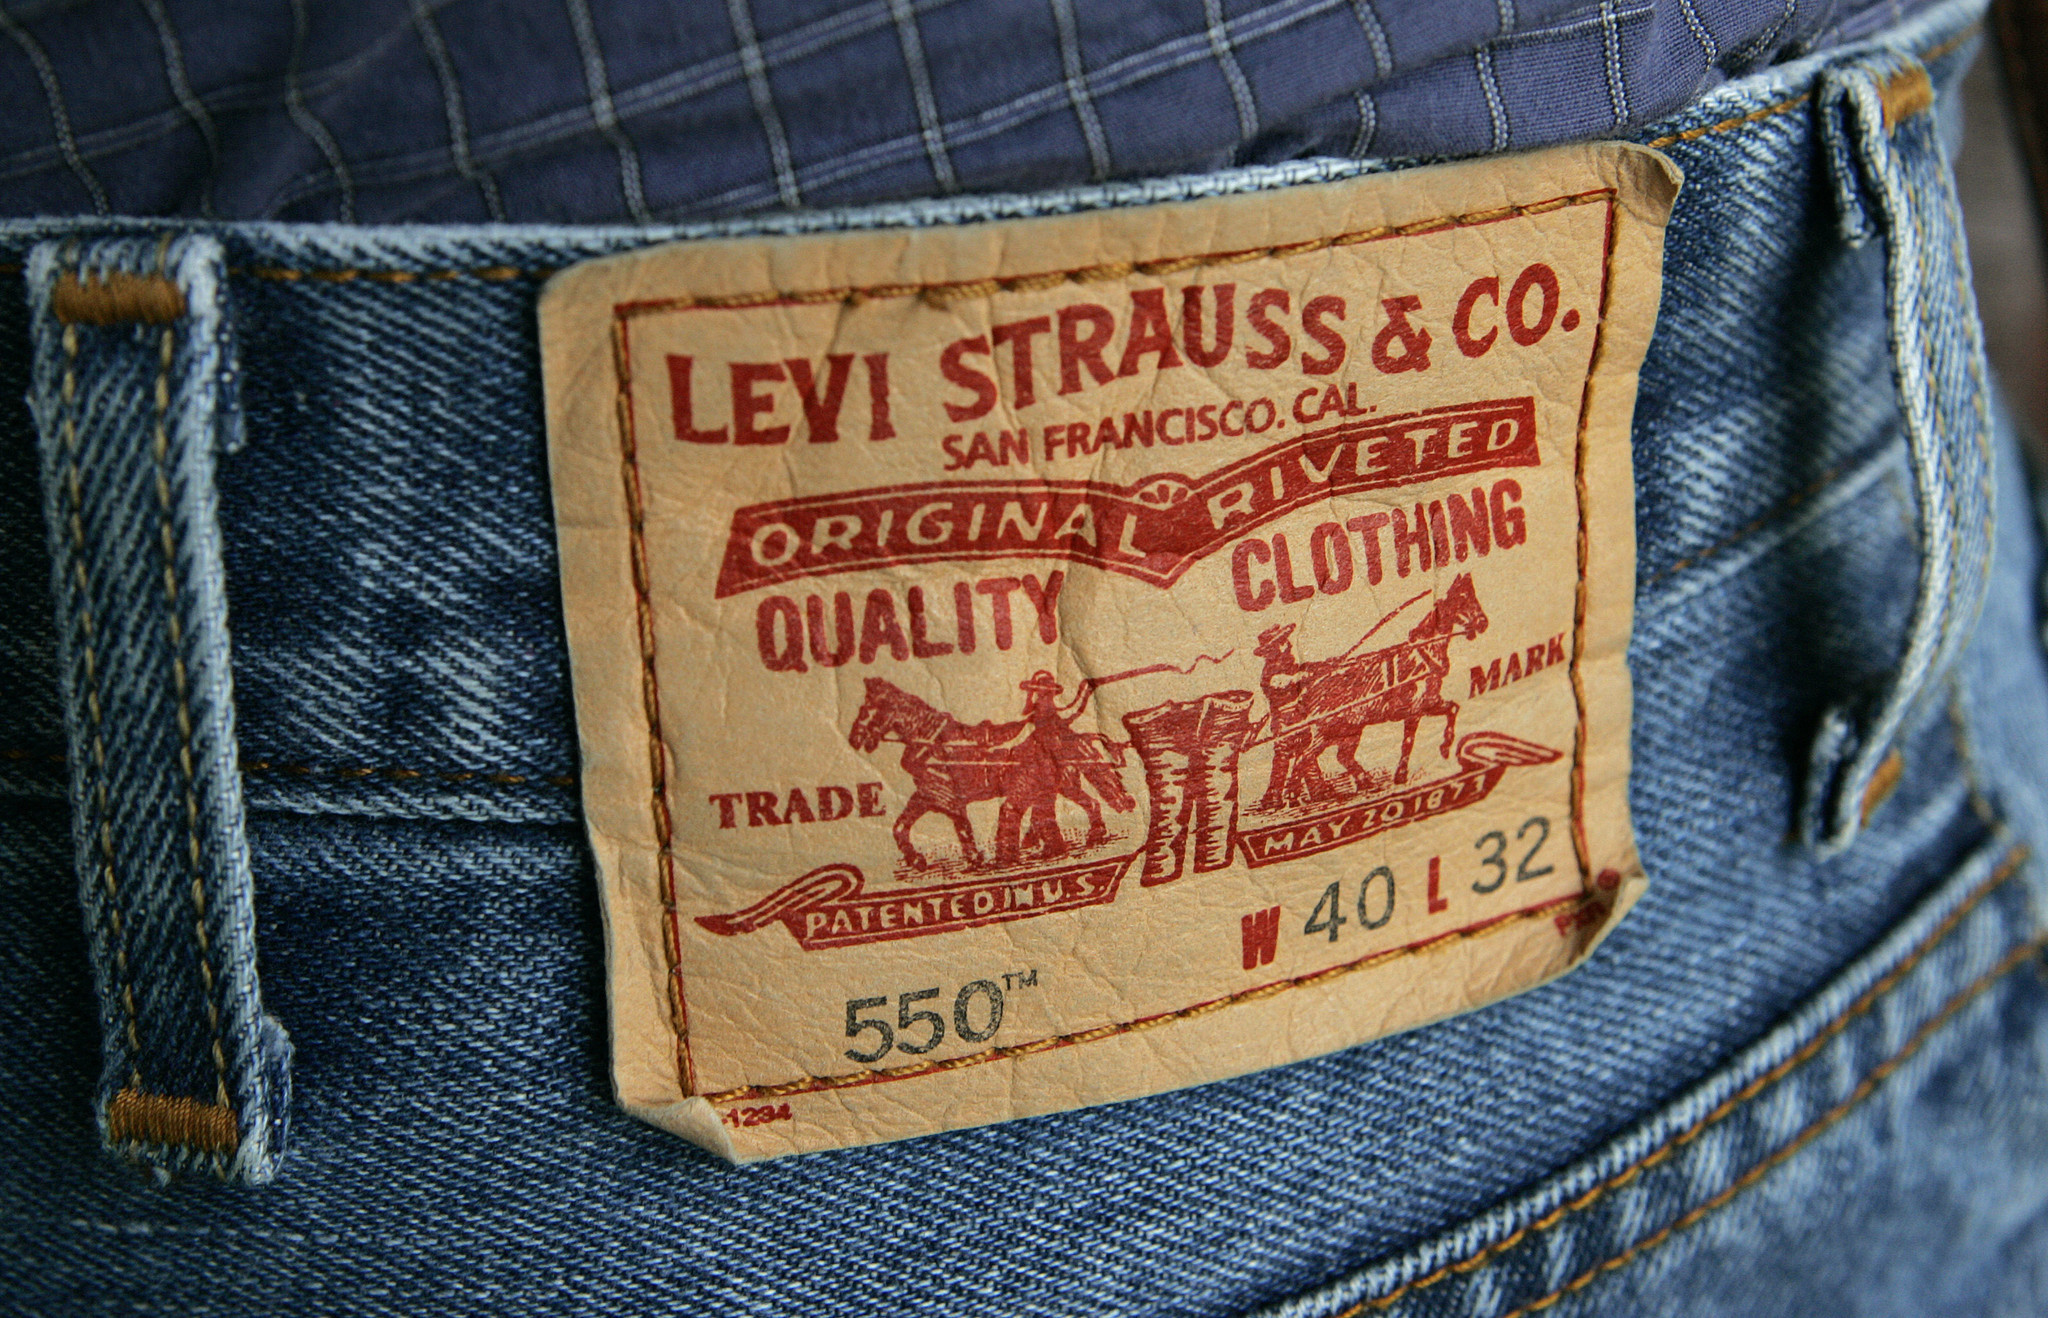 levi strauss jeans questionnaire Levi strauss was born on 26 th february 1829 and was the founder of levi strauss & co, the first company to ever make blue jeans the company was created in 1853 and was based in san francisco the company was created in 1853 and was based in san francisco.